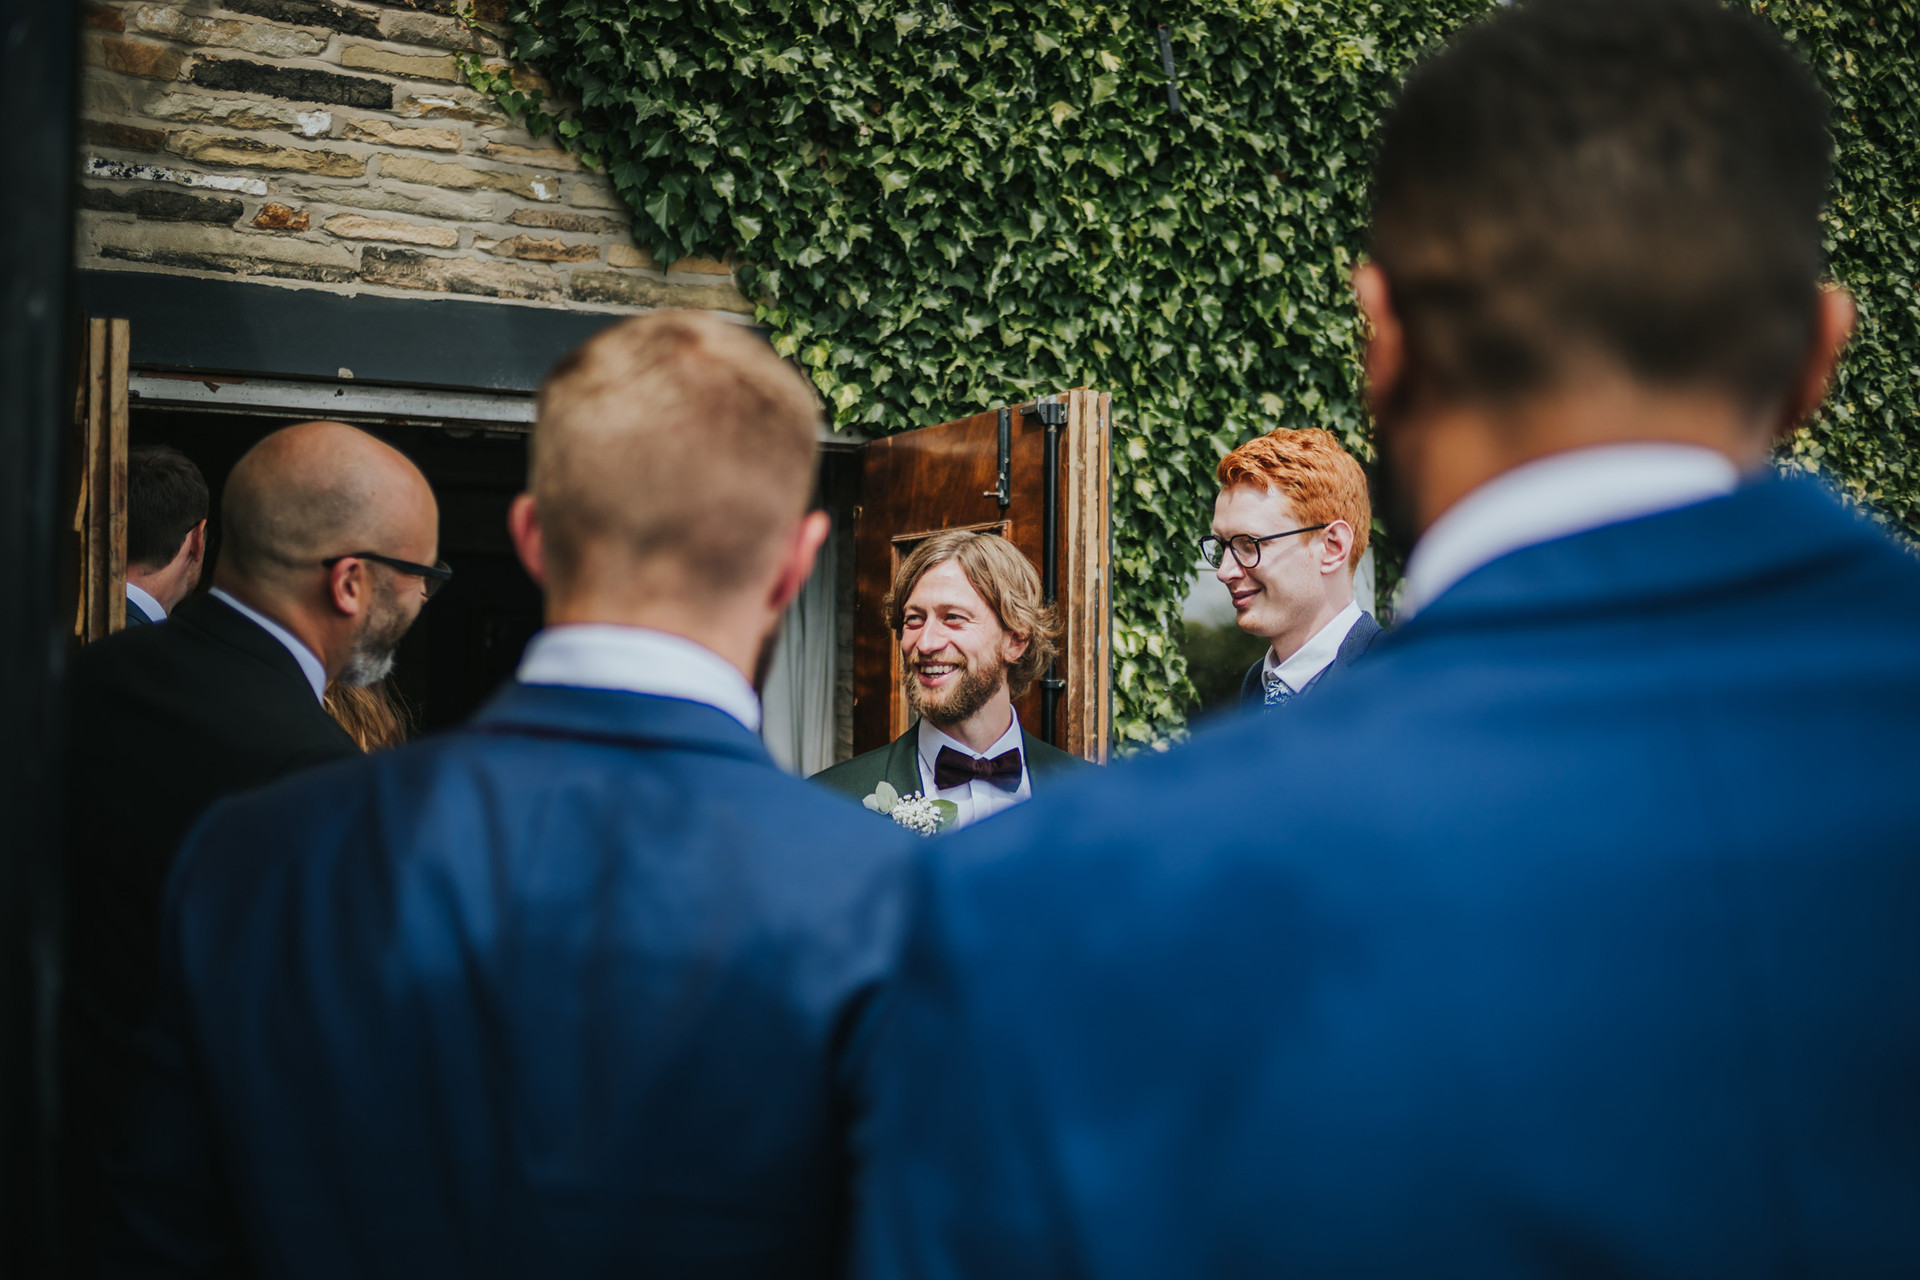 The groom chatting with friends outside the pub